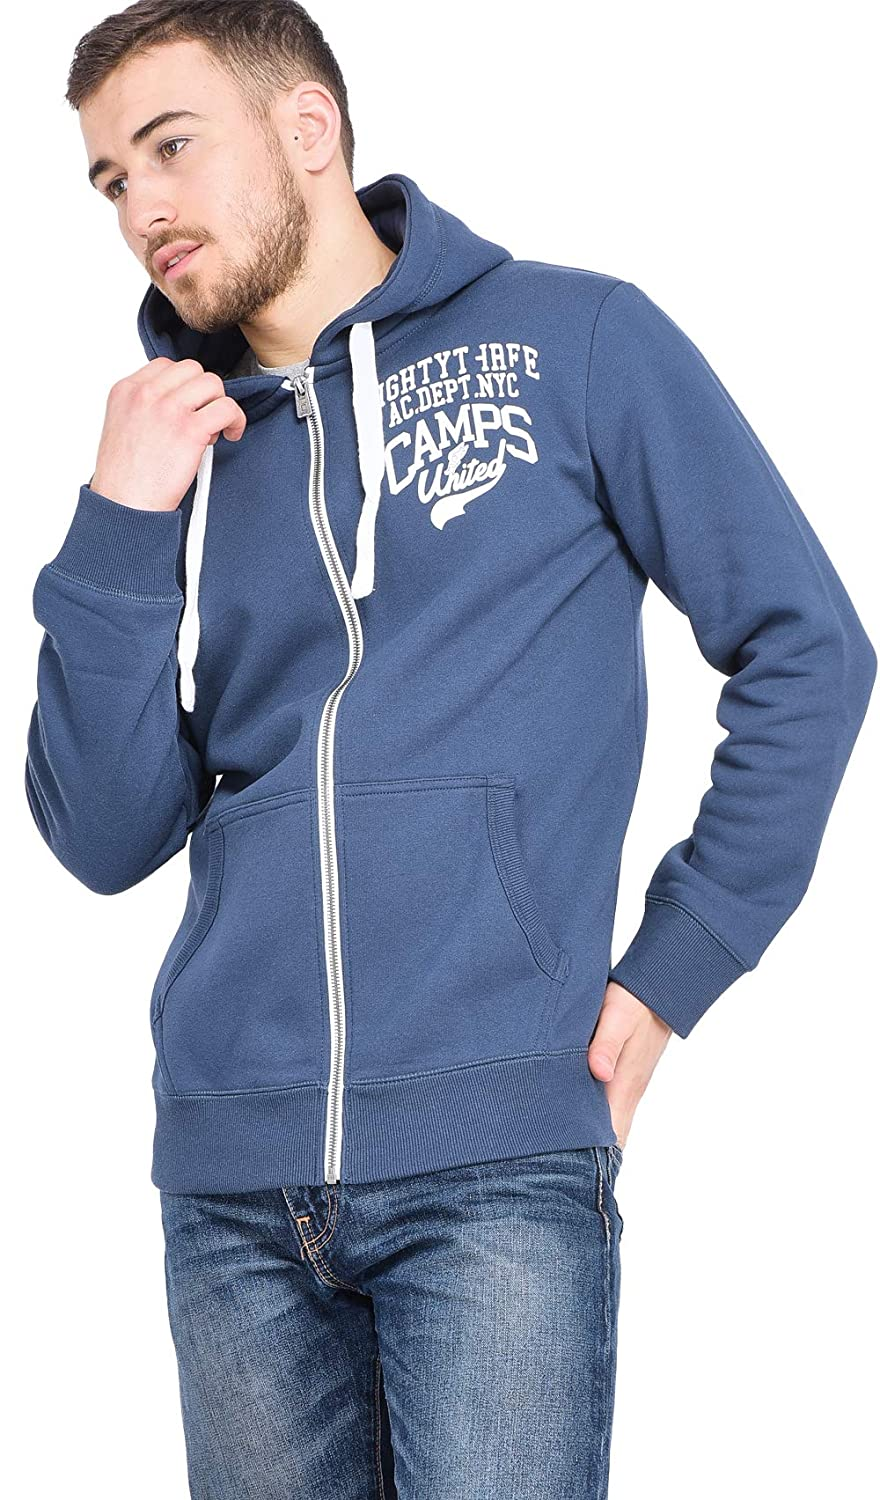 CAMPS UNITED Printed Hoodie Summer Collection Men